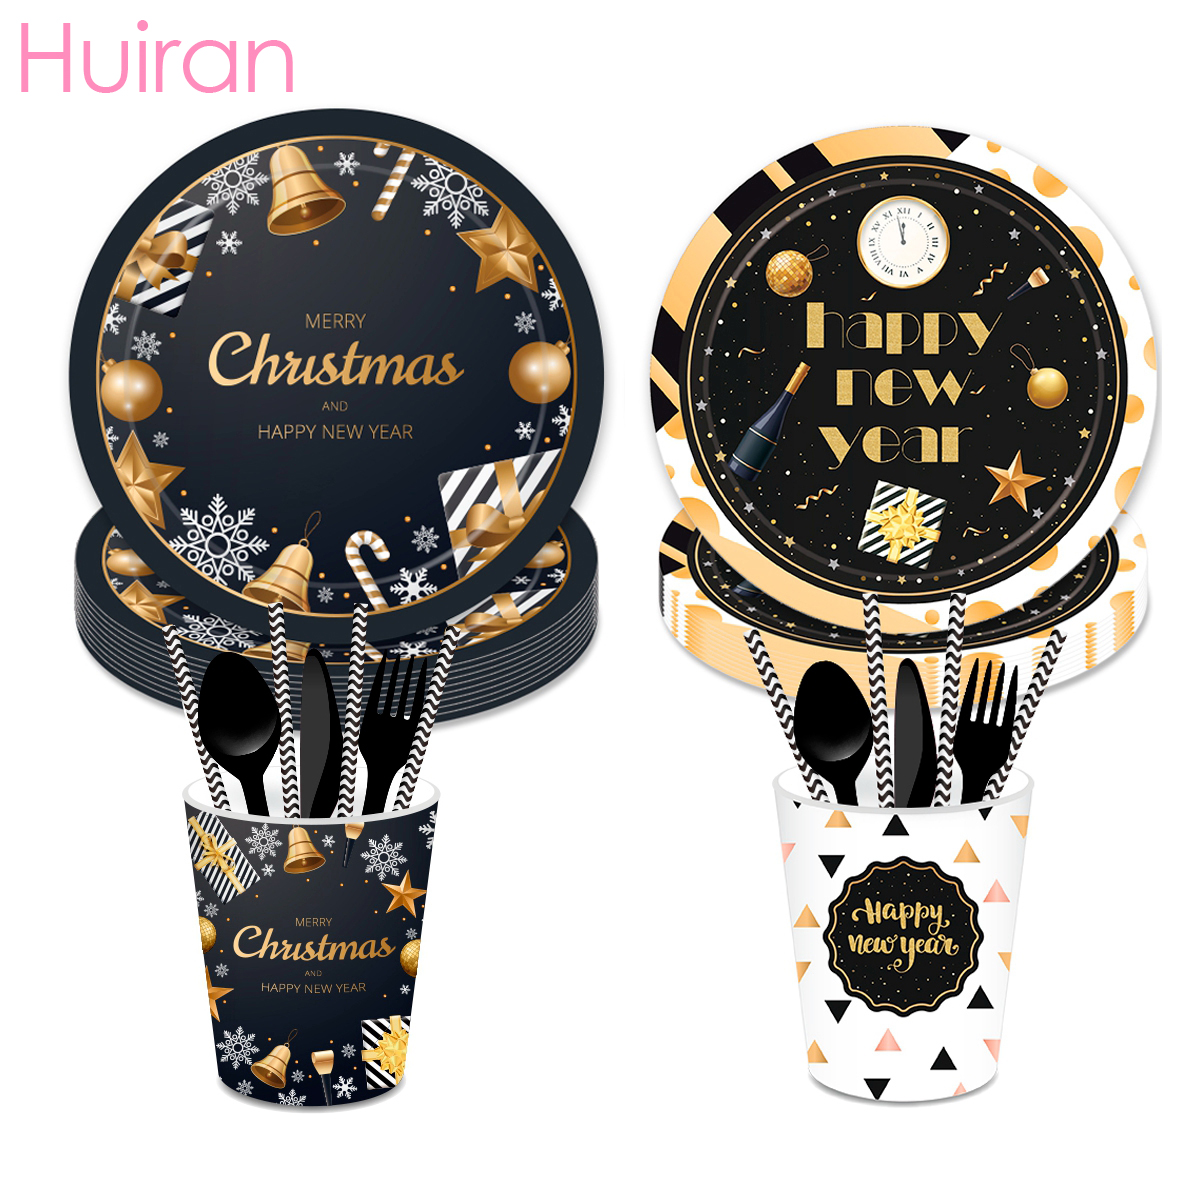 Huiran Black Gold Christmas Disposable Tableware Decorations For Home 2019 Xmas Gift Navidad Neol Happy New Year 2020